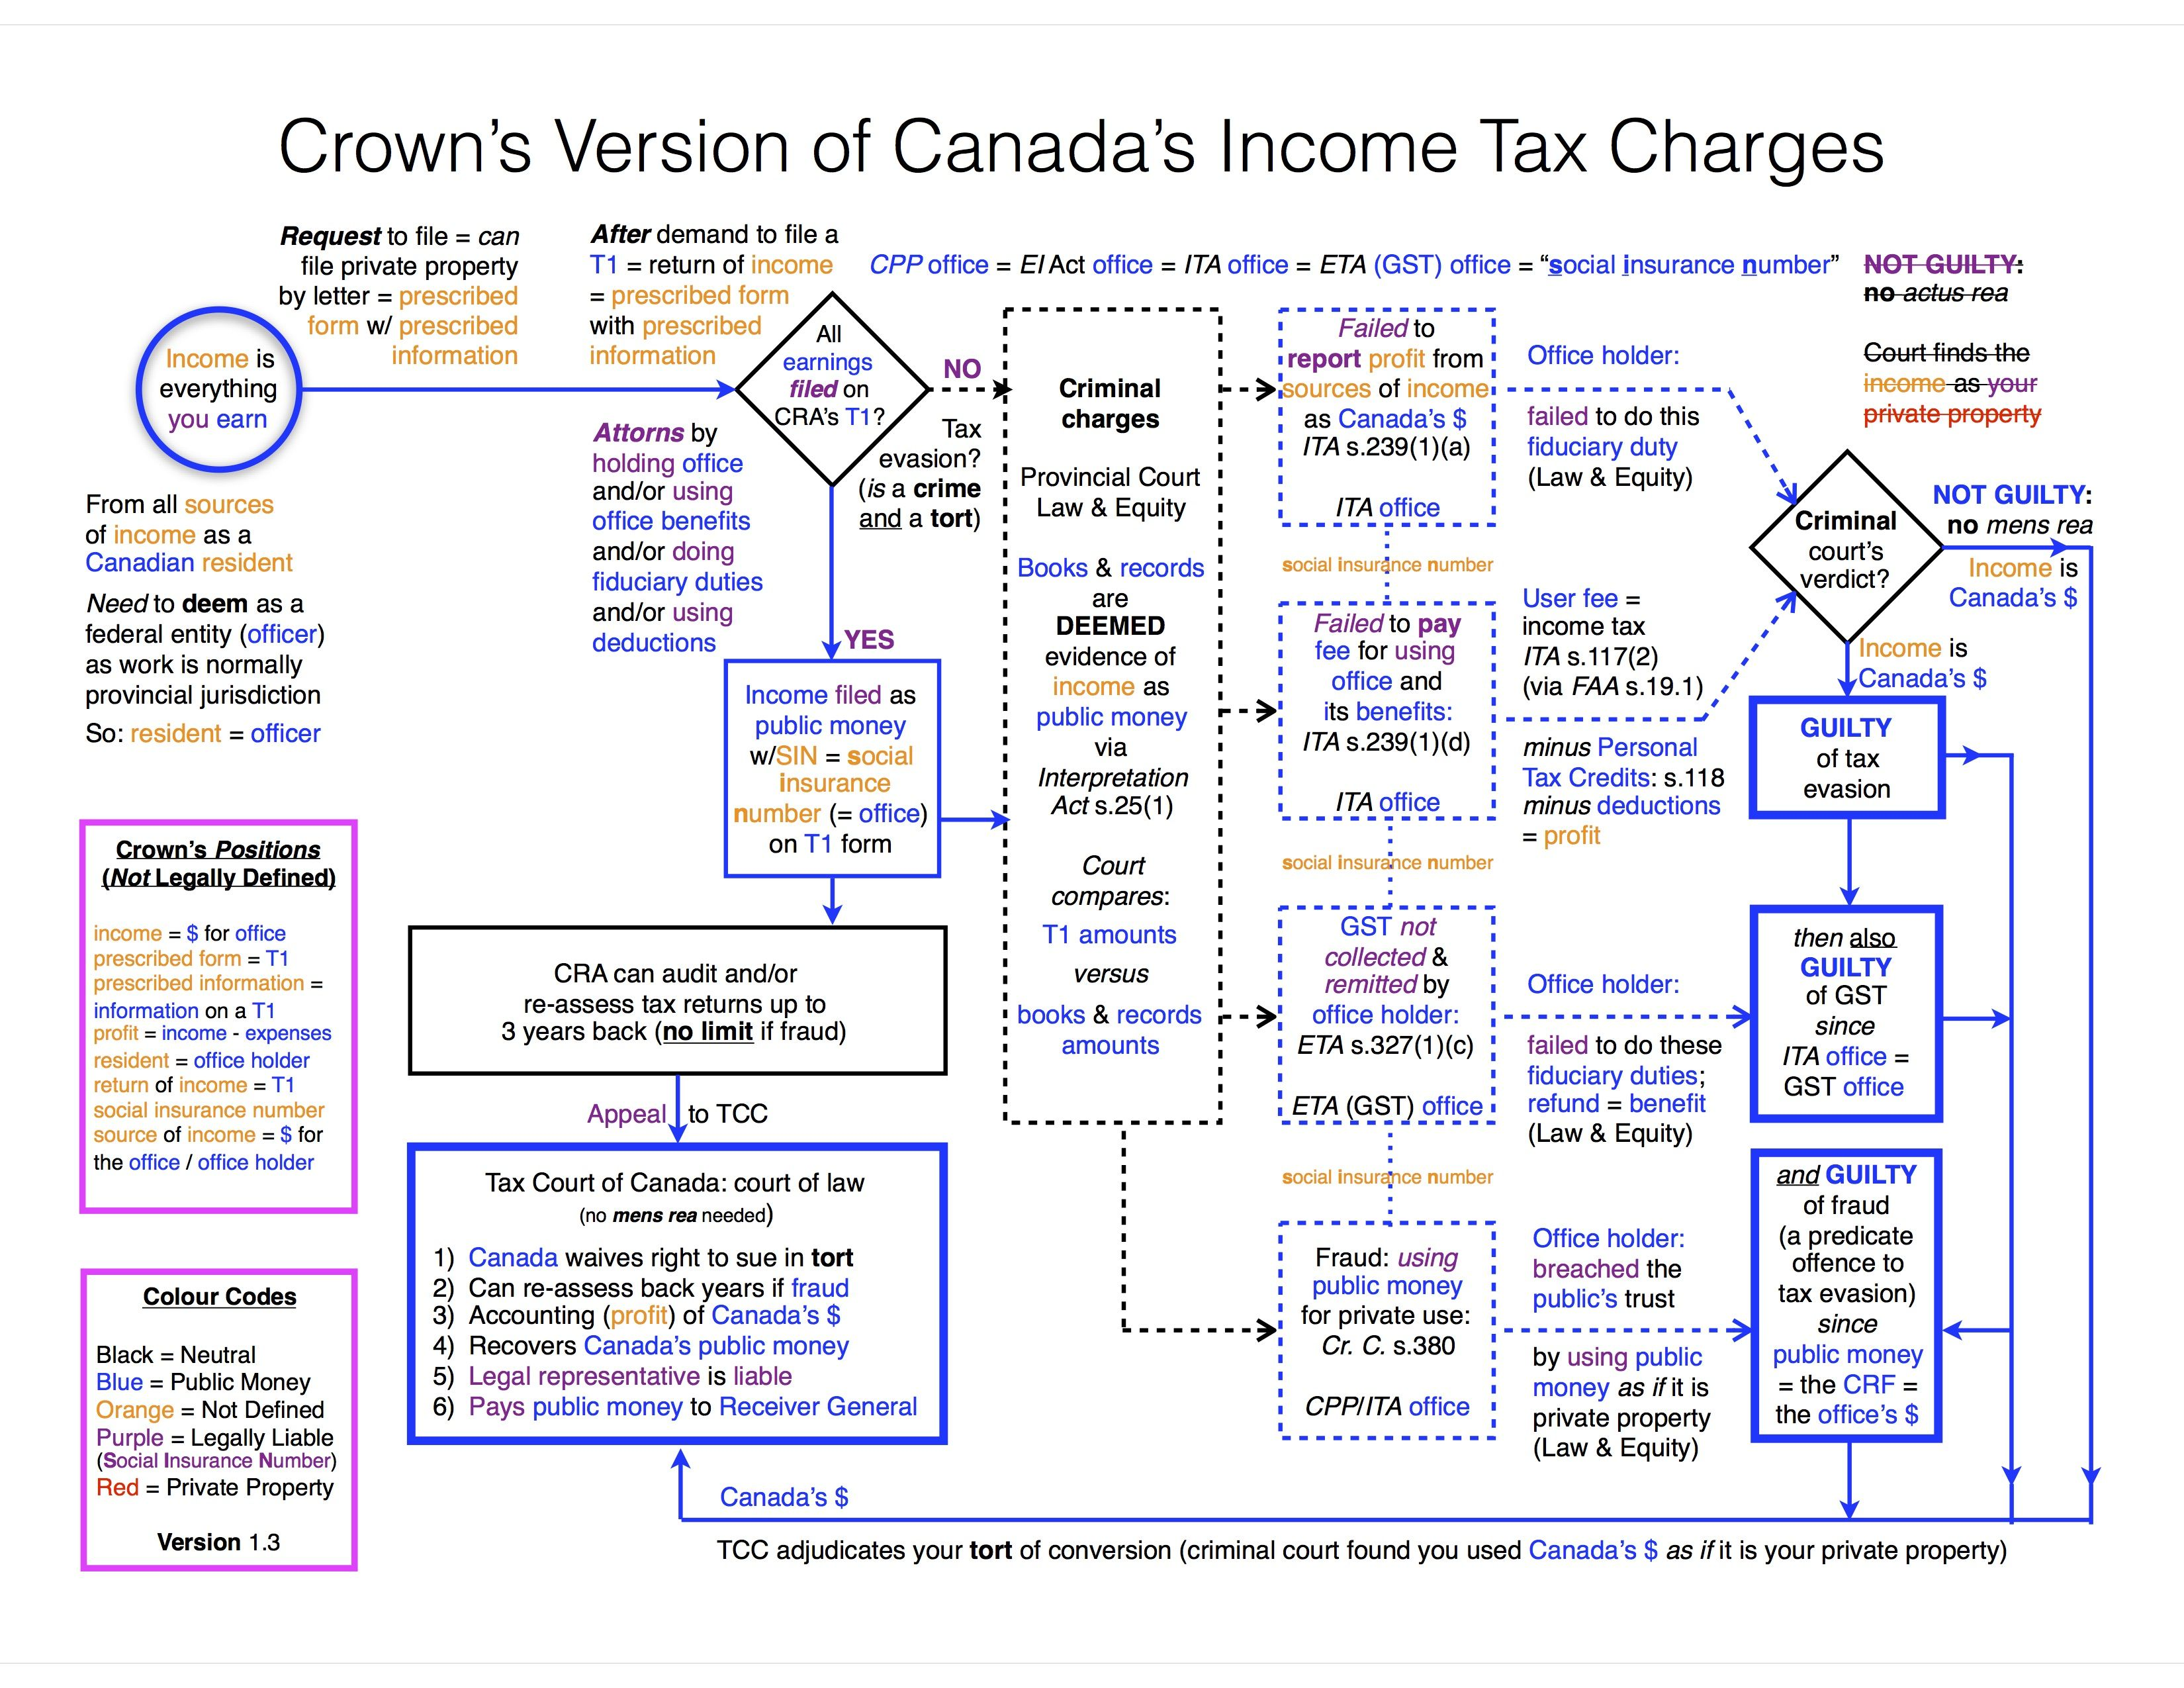 Obfuscation canada income tax evasion charges flowchartg 3300 obfuscation canada income tax evasion charges flowchartg nvjuhfo Images